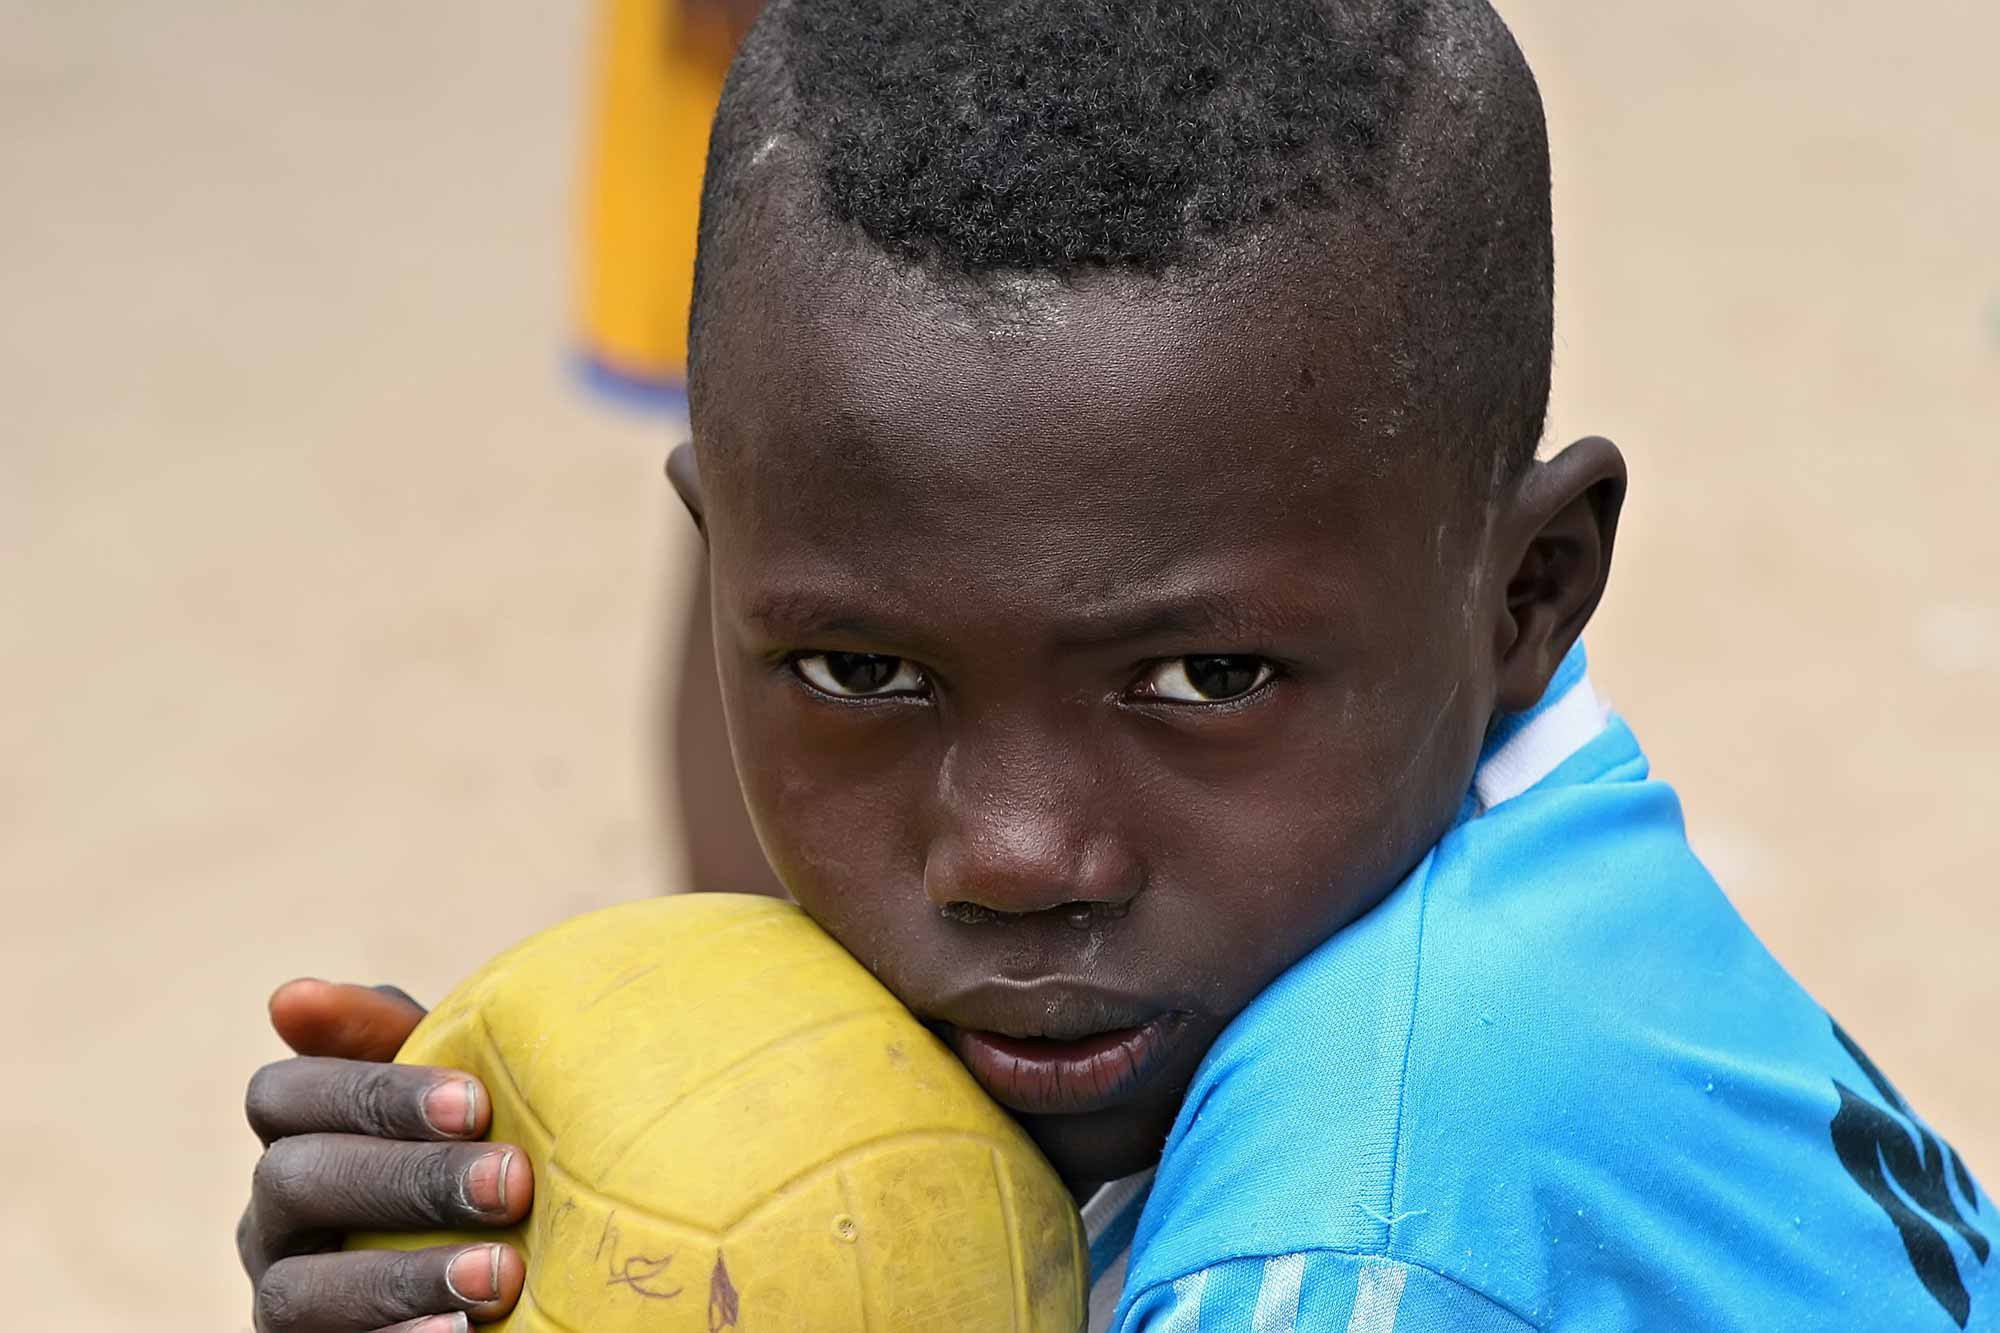 boy-with-soccer-ball-dakar-senegal-africa